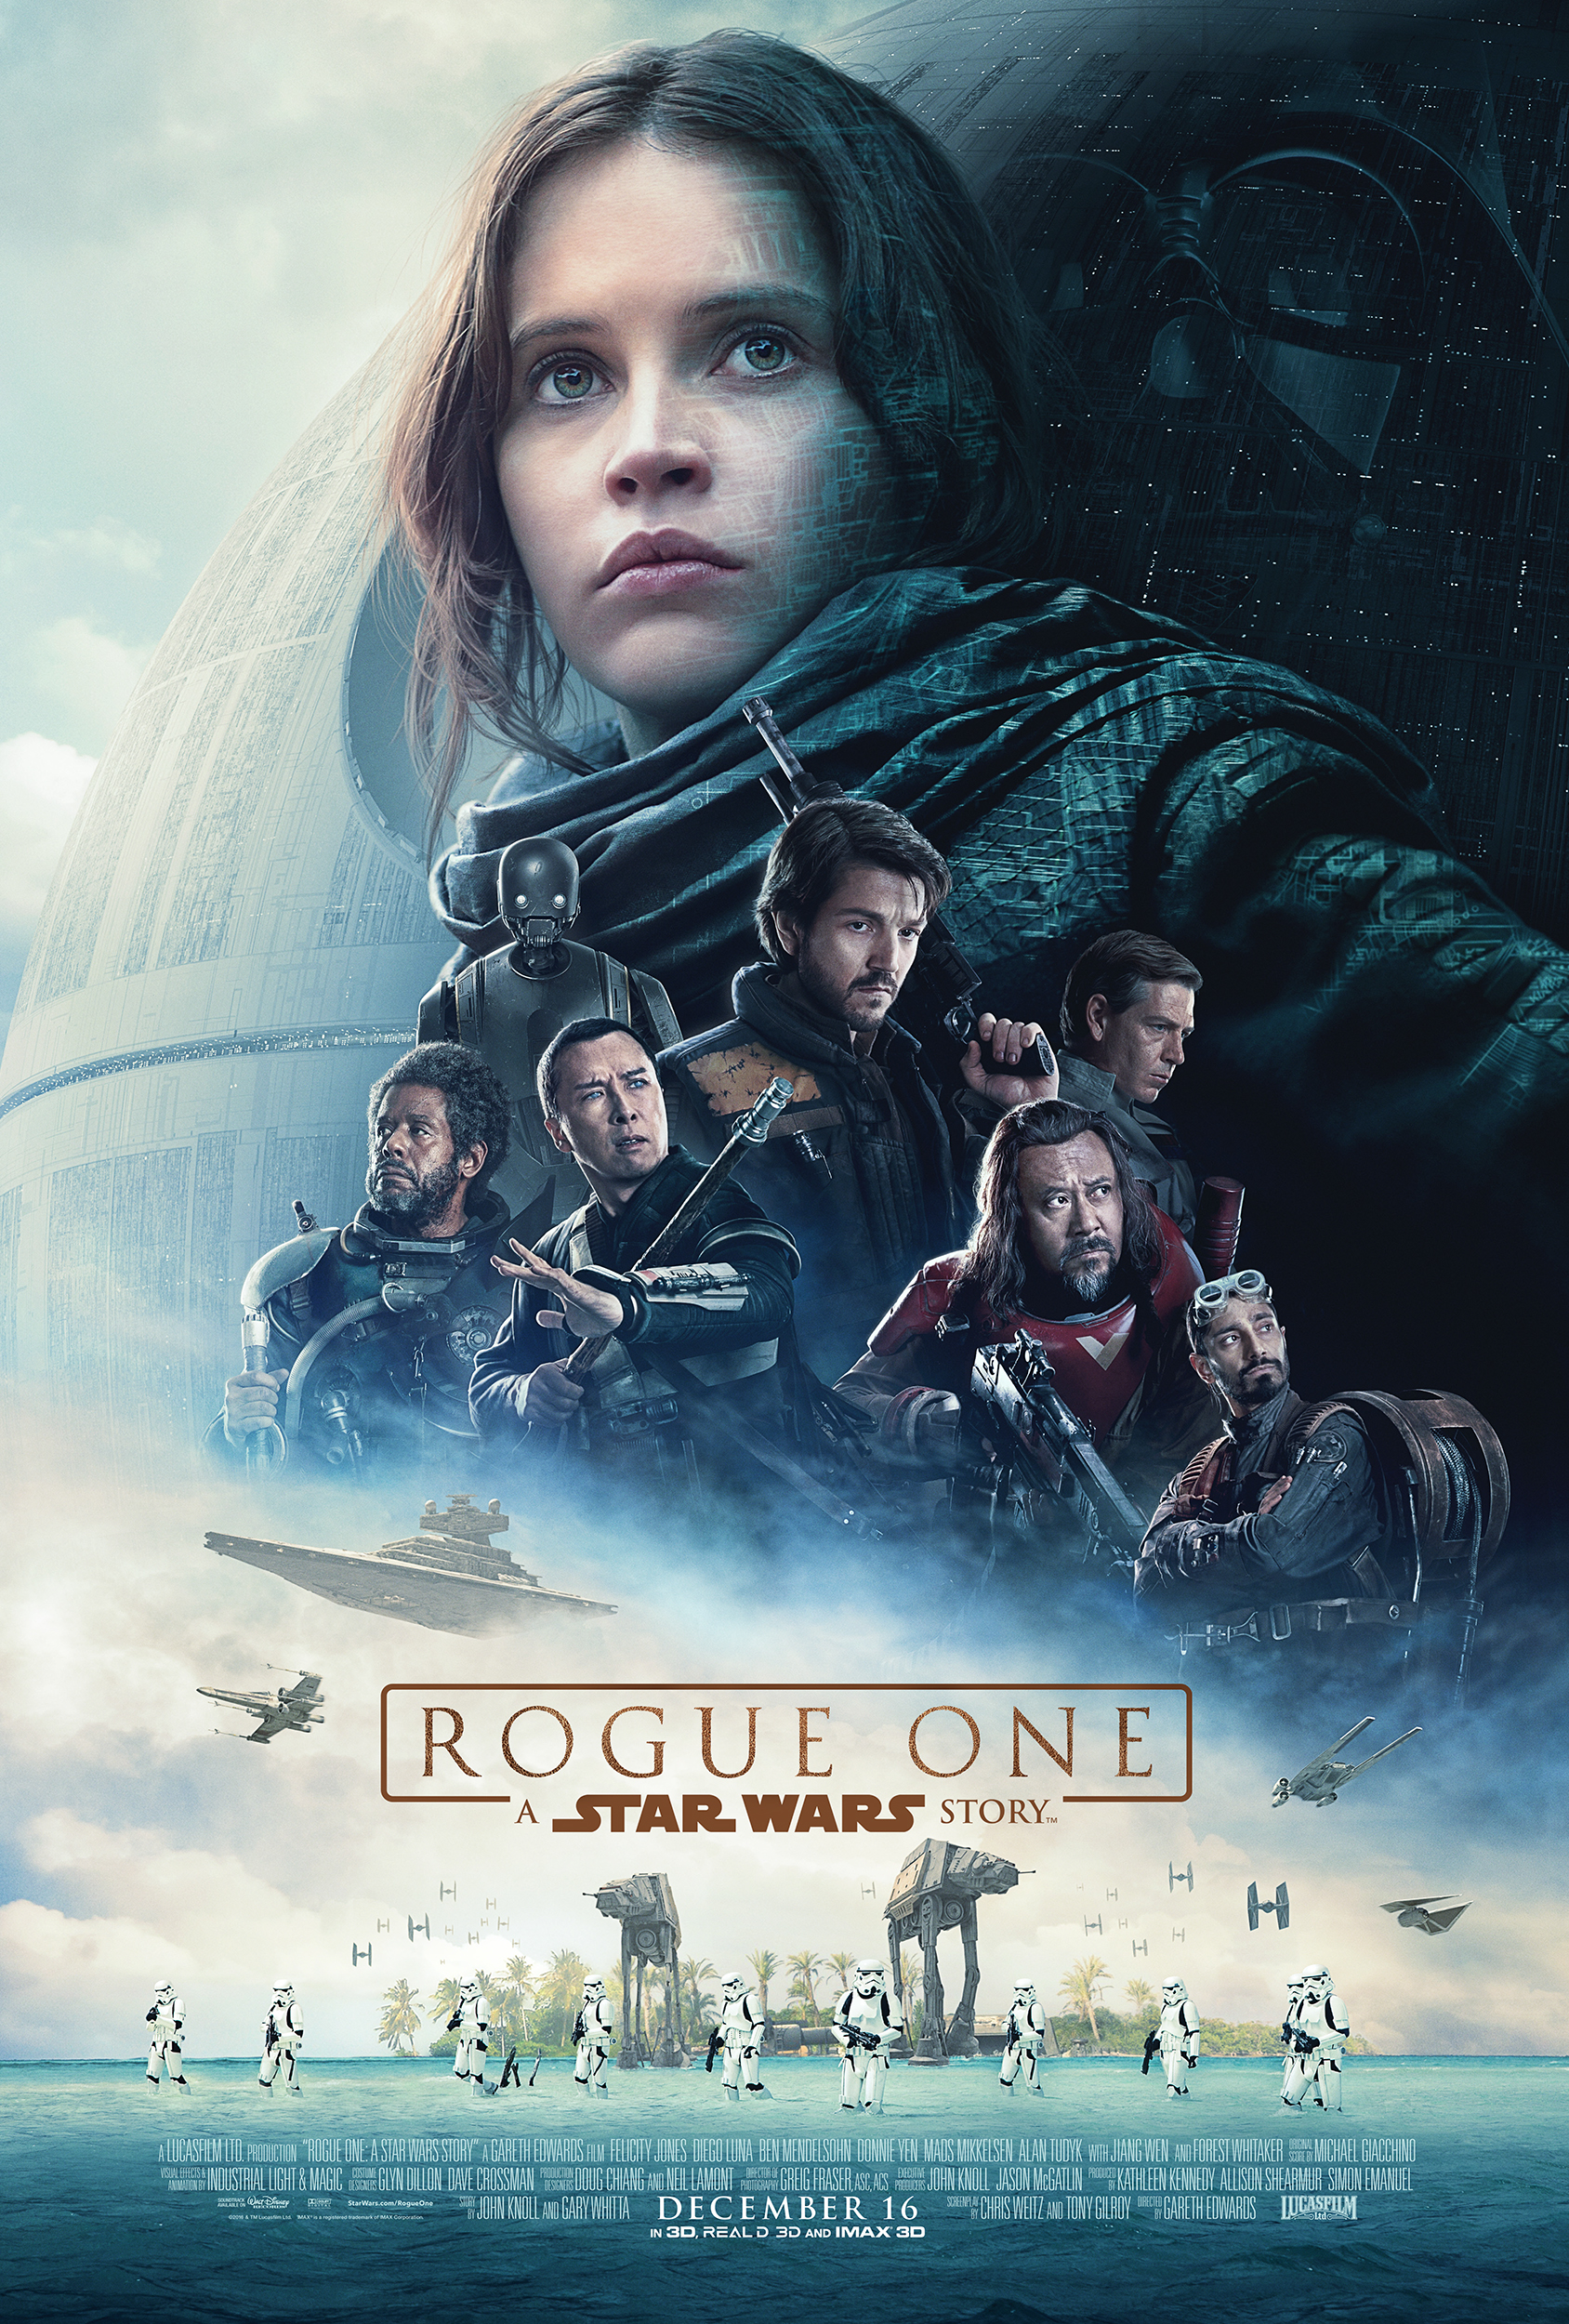 rogue one a star wars story poster revealed and trailer announced on the star wars show. Black Bedroom Furniture Sets. Home Design Ideas